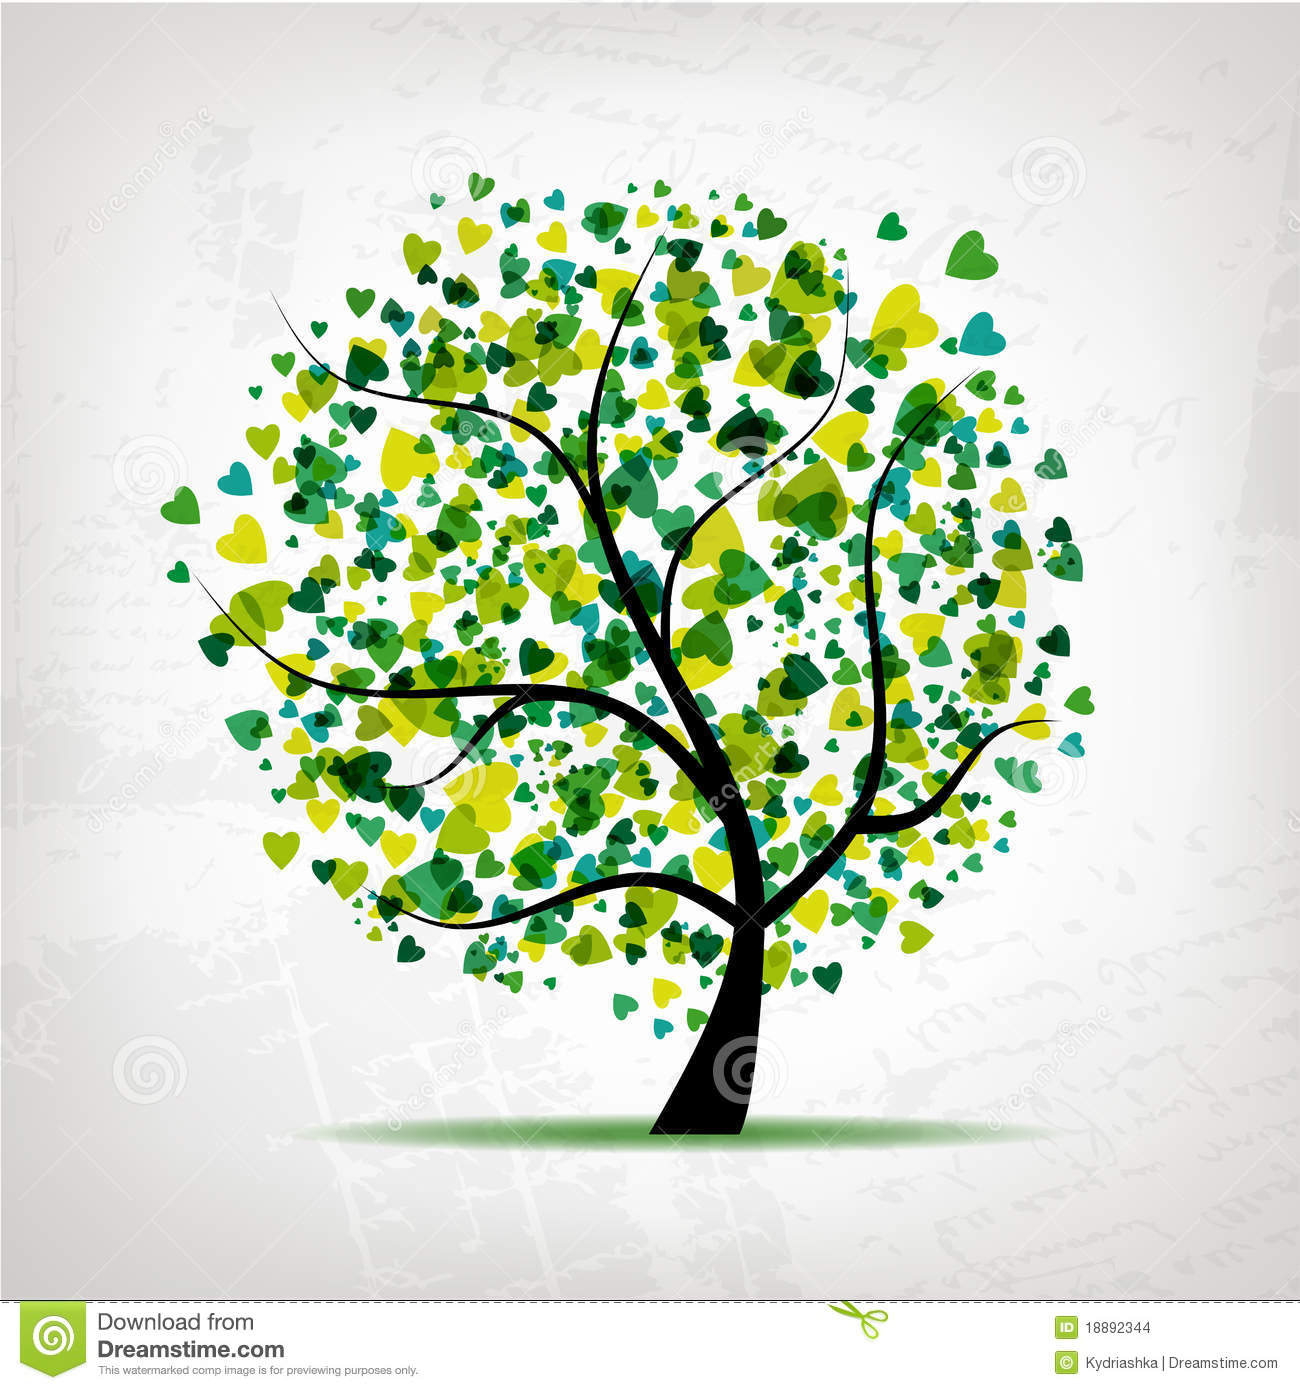 Abstract tree with heart leaf on grunge background